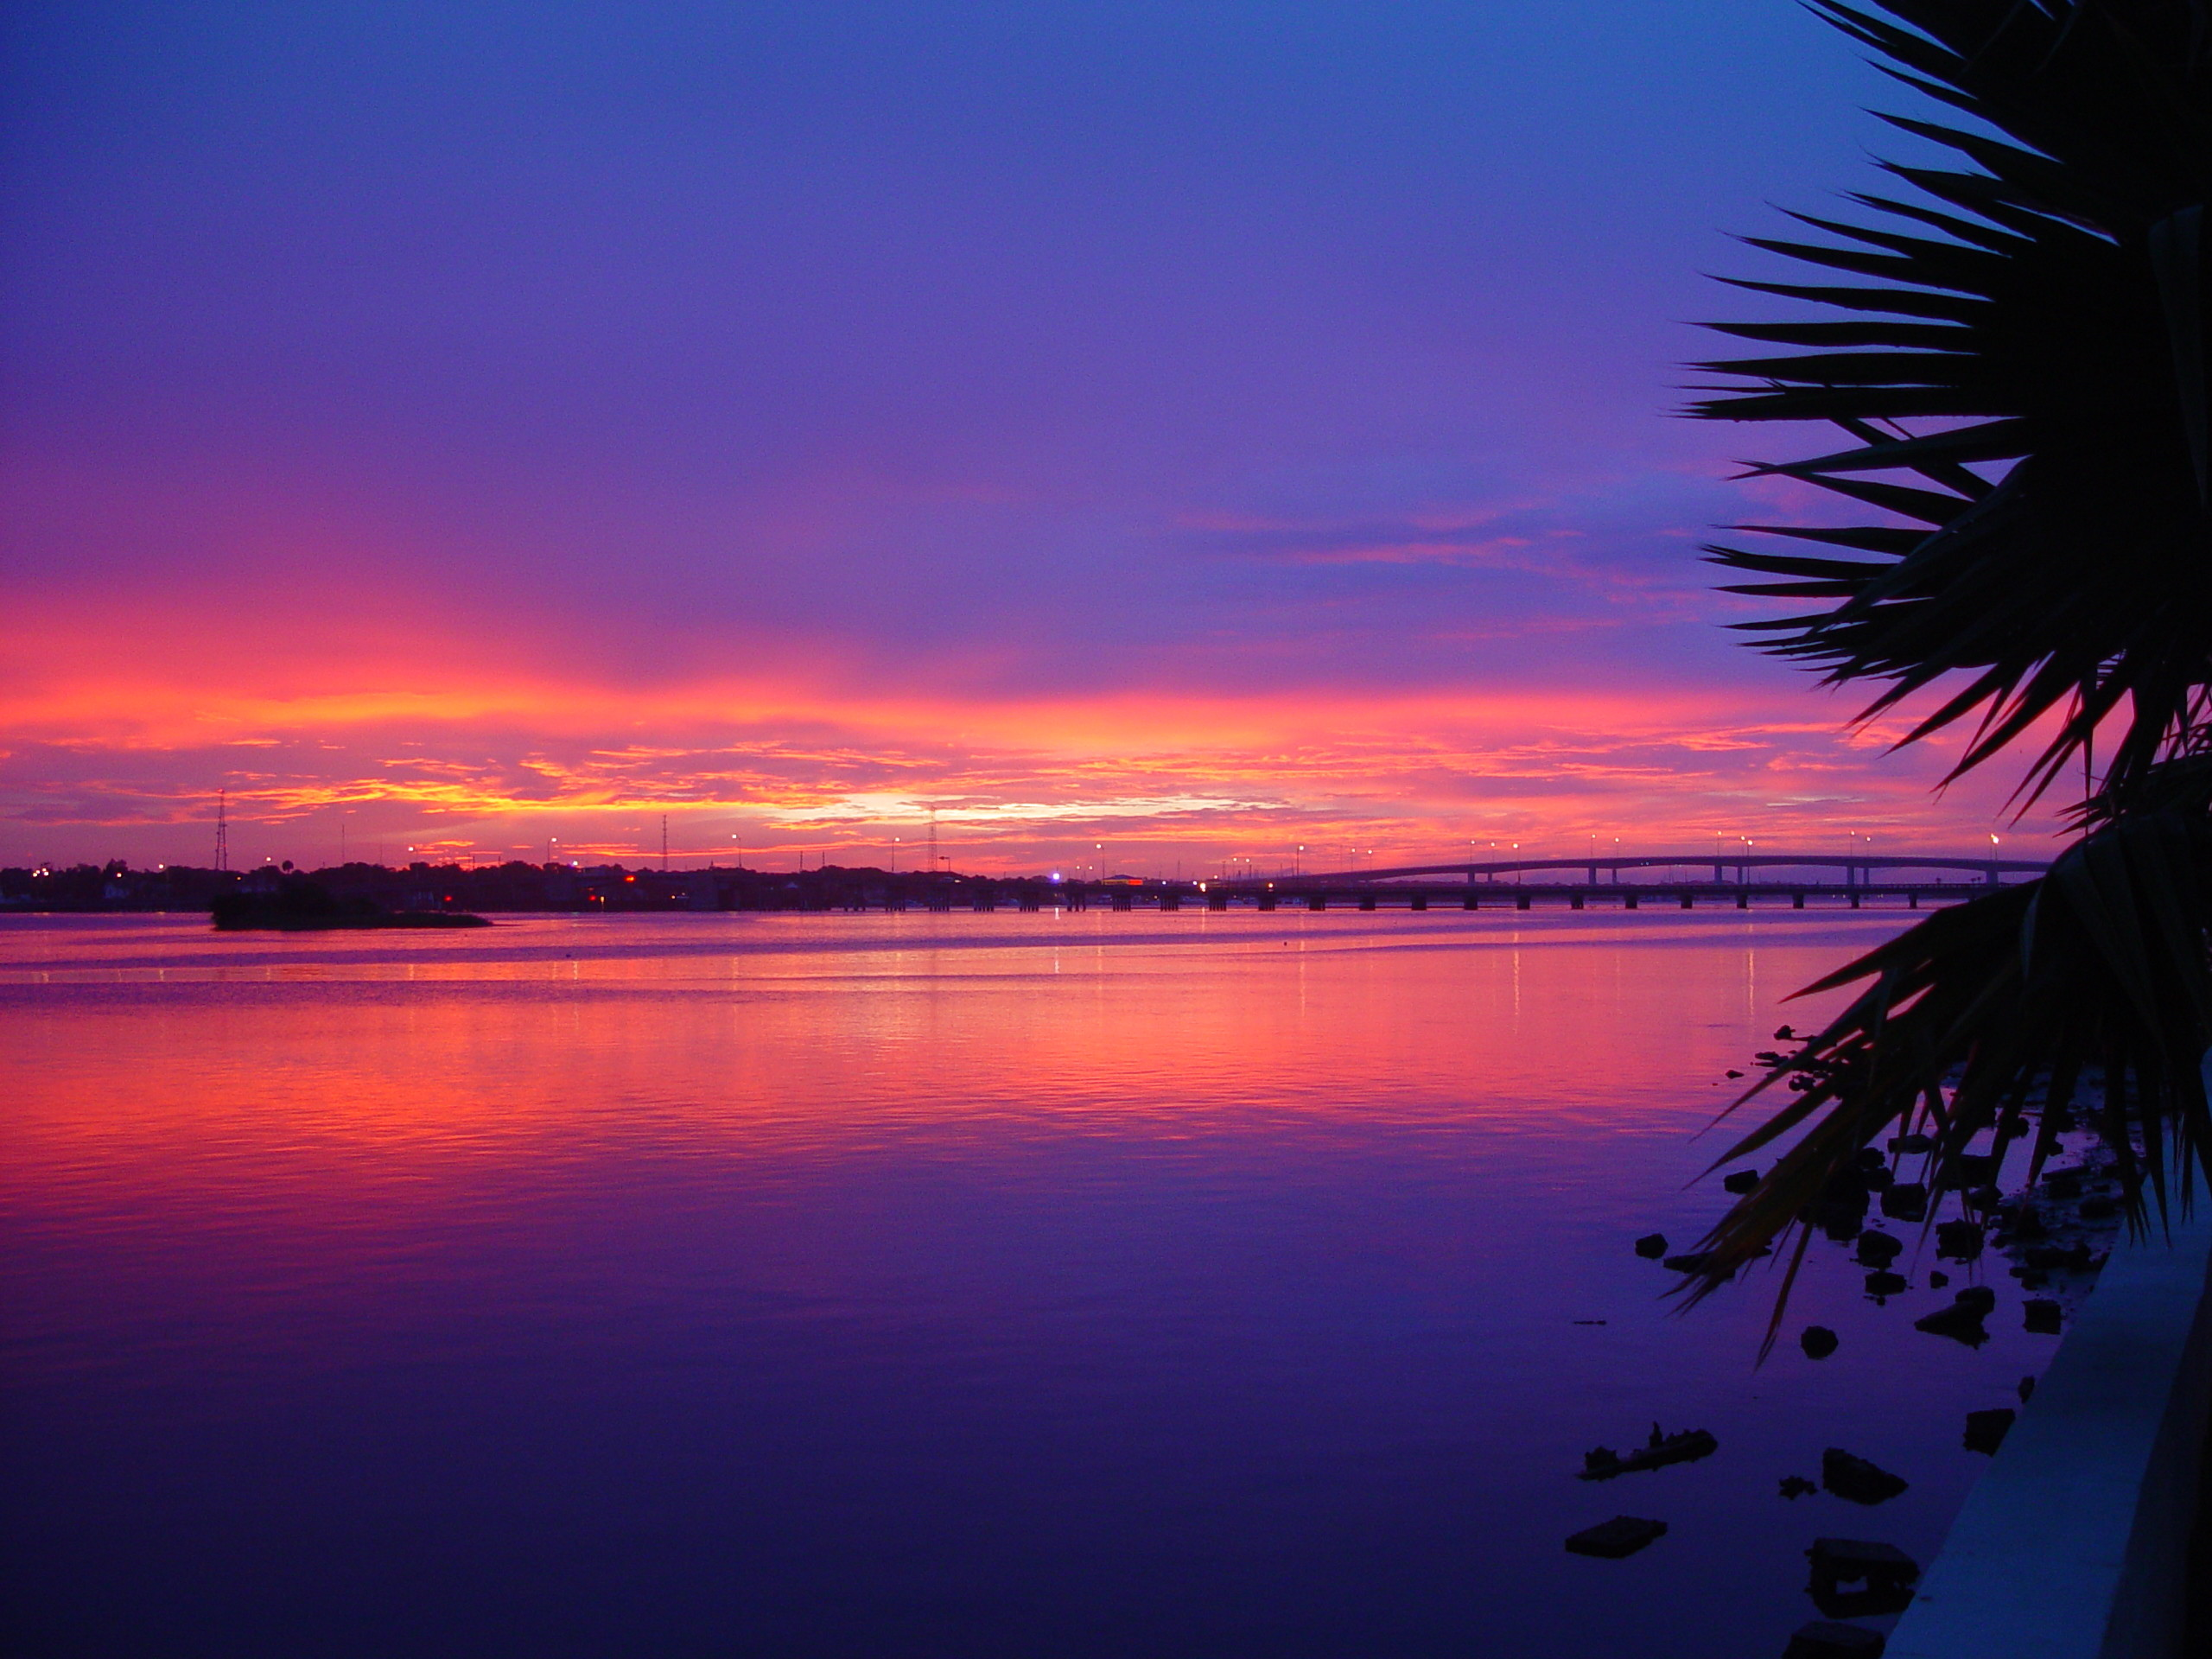 Photo of a beautiful sunset over the Halifax River with a blue, orange,  red, and purple sky in Daytona Beach, FL among the palm trees.